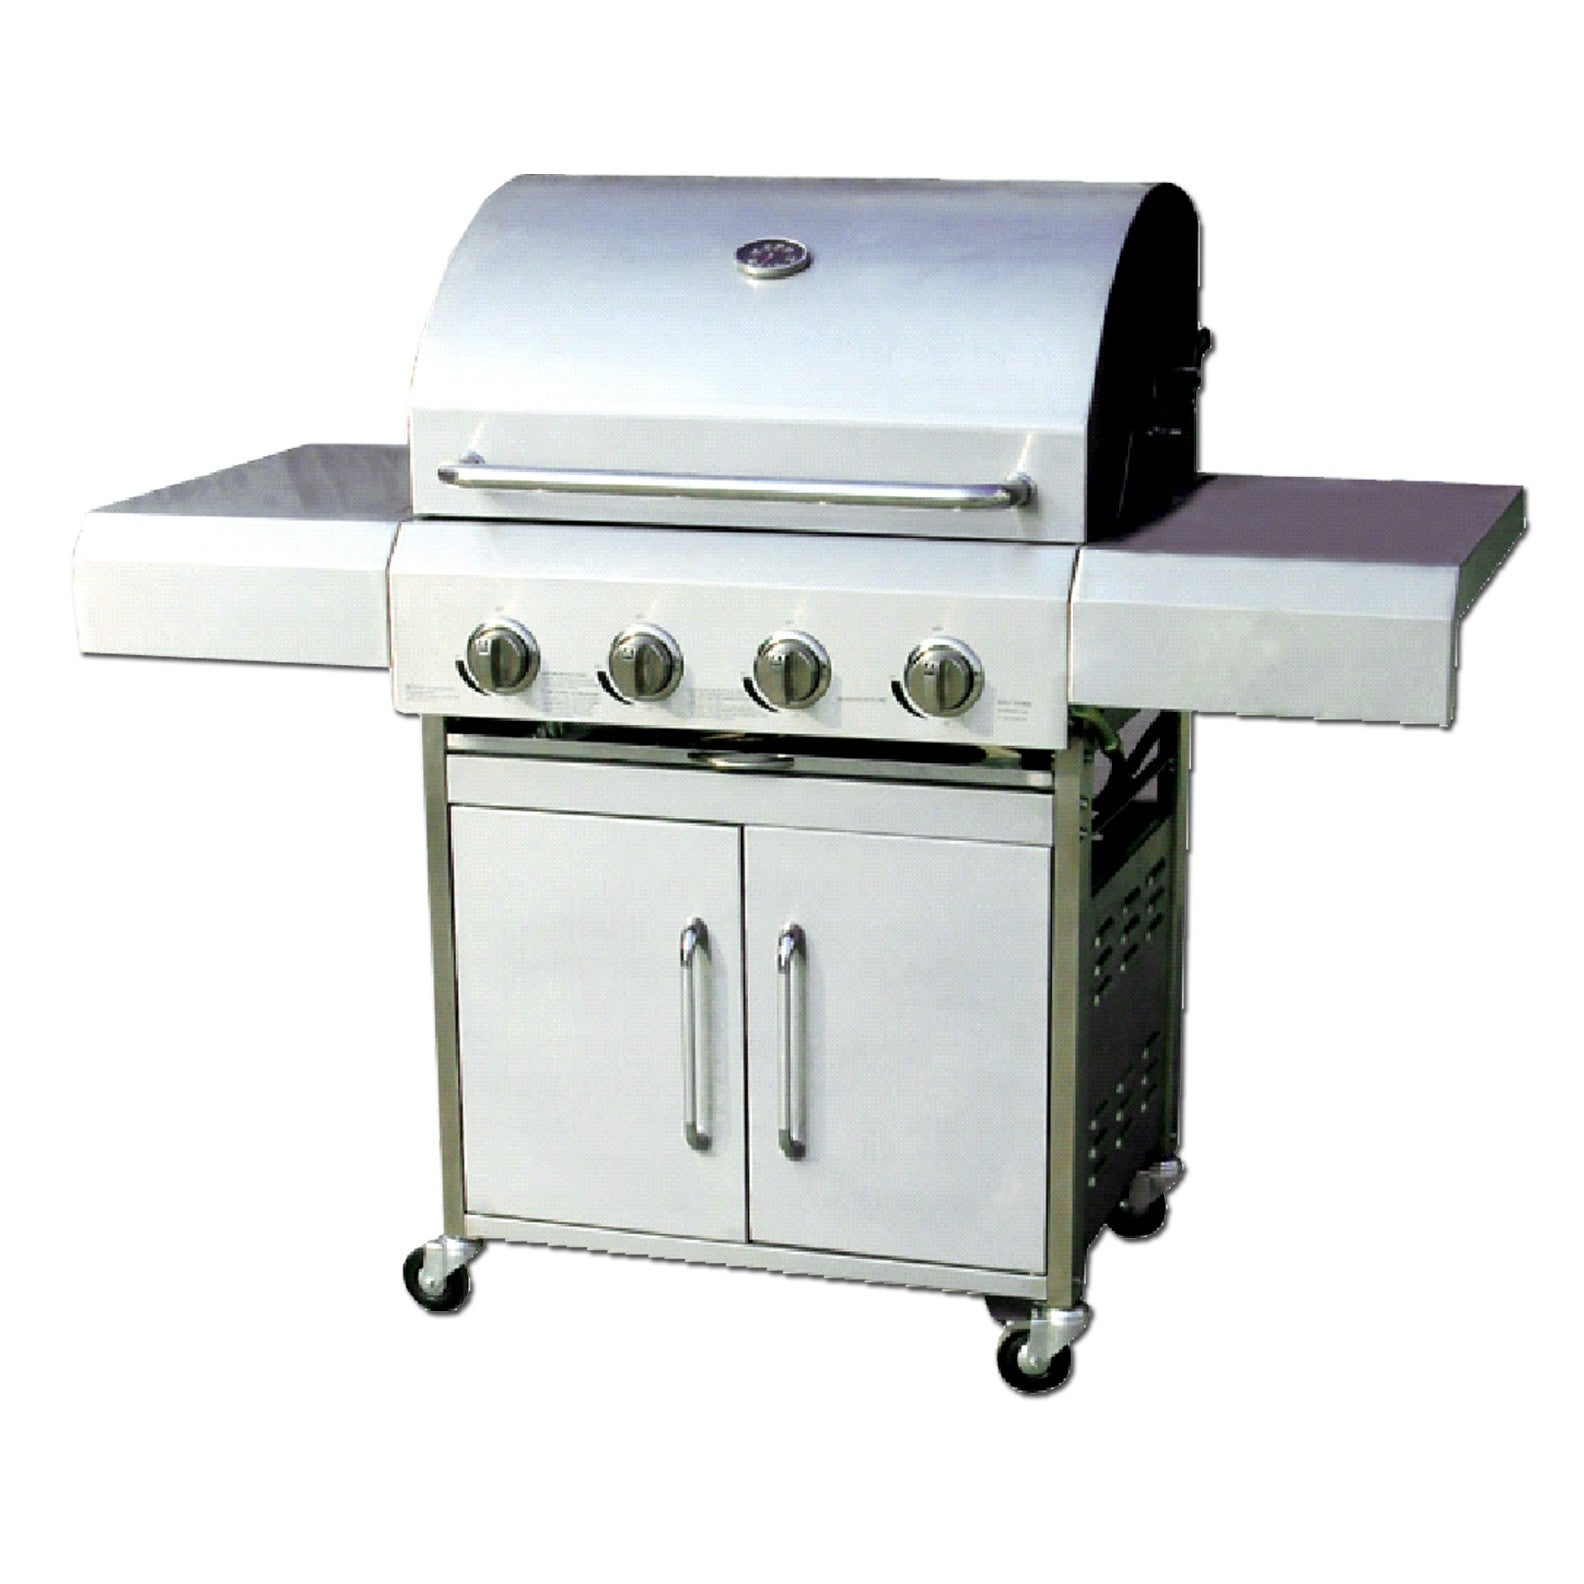 BBQ Grills and Outdoor Cooking